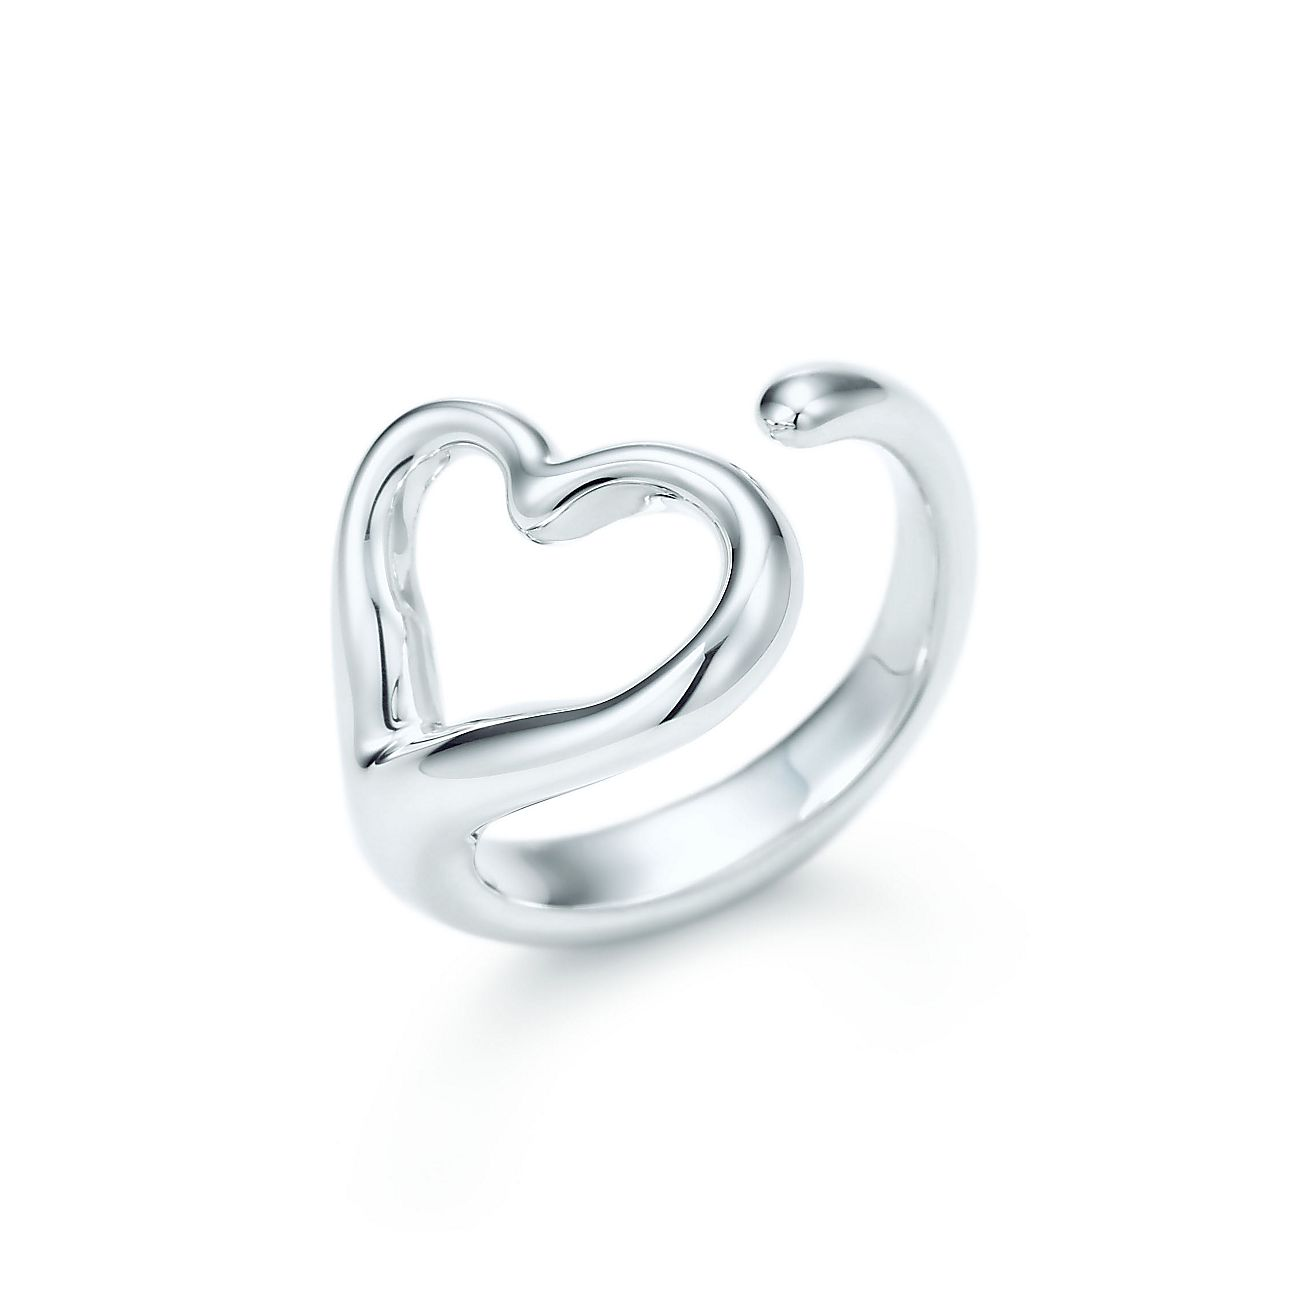 elsa peretti open heart ring in sterling silver medium tiffany co. Black Bedroom Furniture Sets. Home Design Ideas